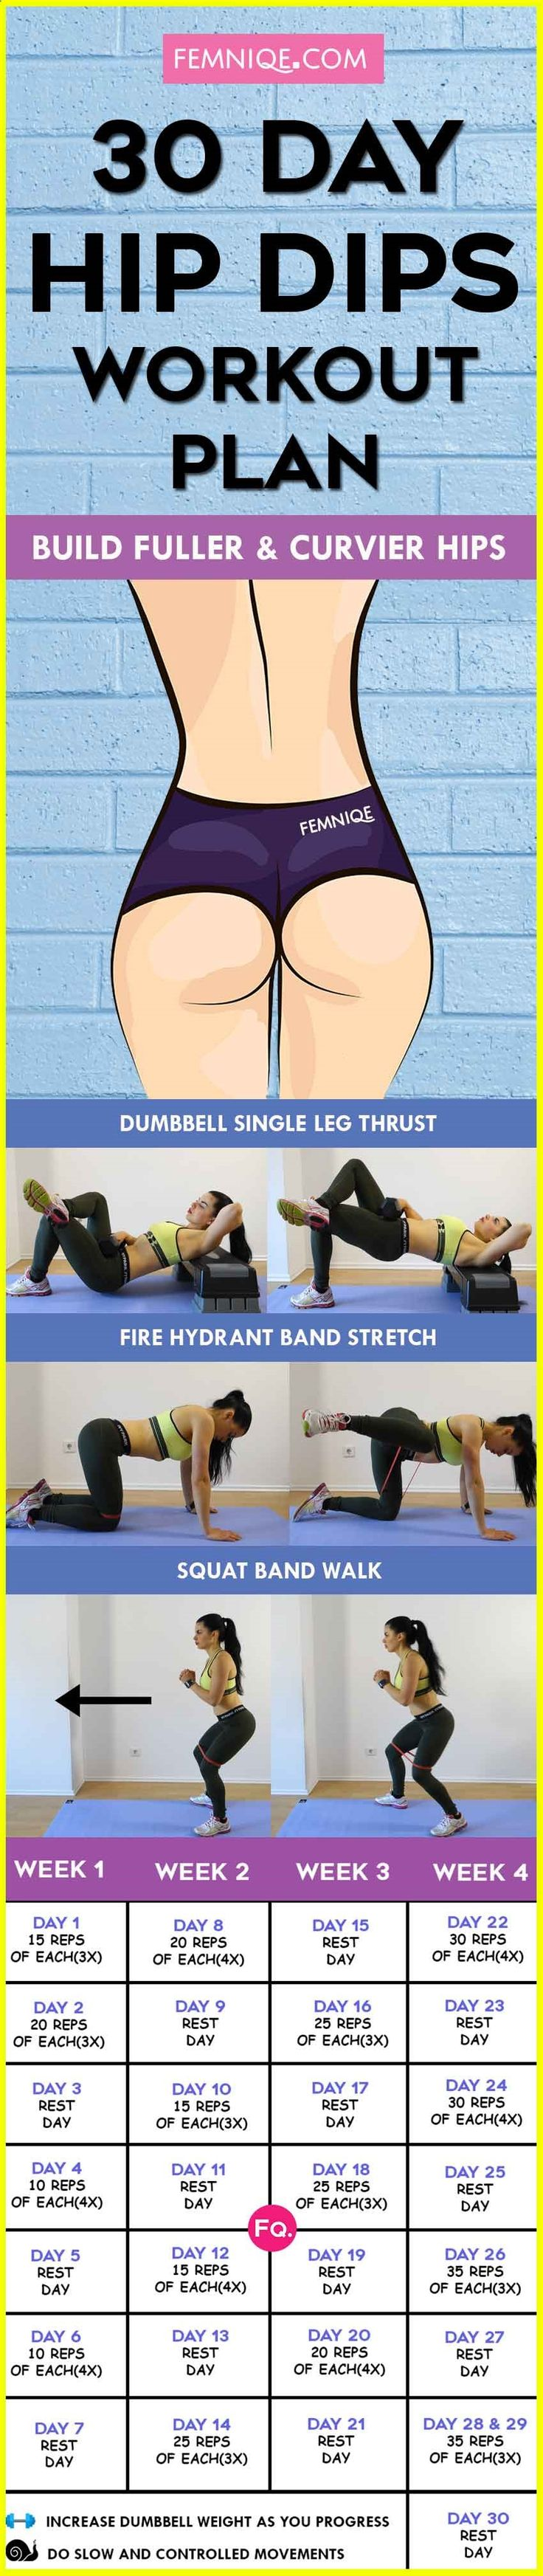 HIP DIPS WORKOUT PLANhttp://www.femniqe.com/2017/06/28/hip-dips-workout/